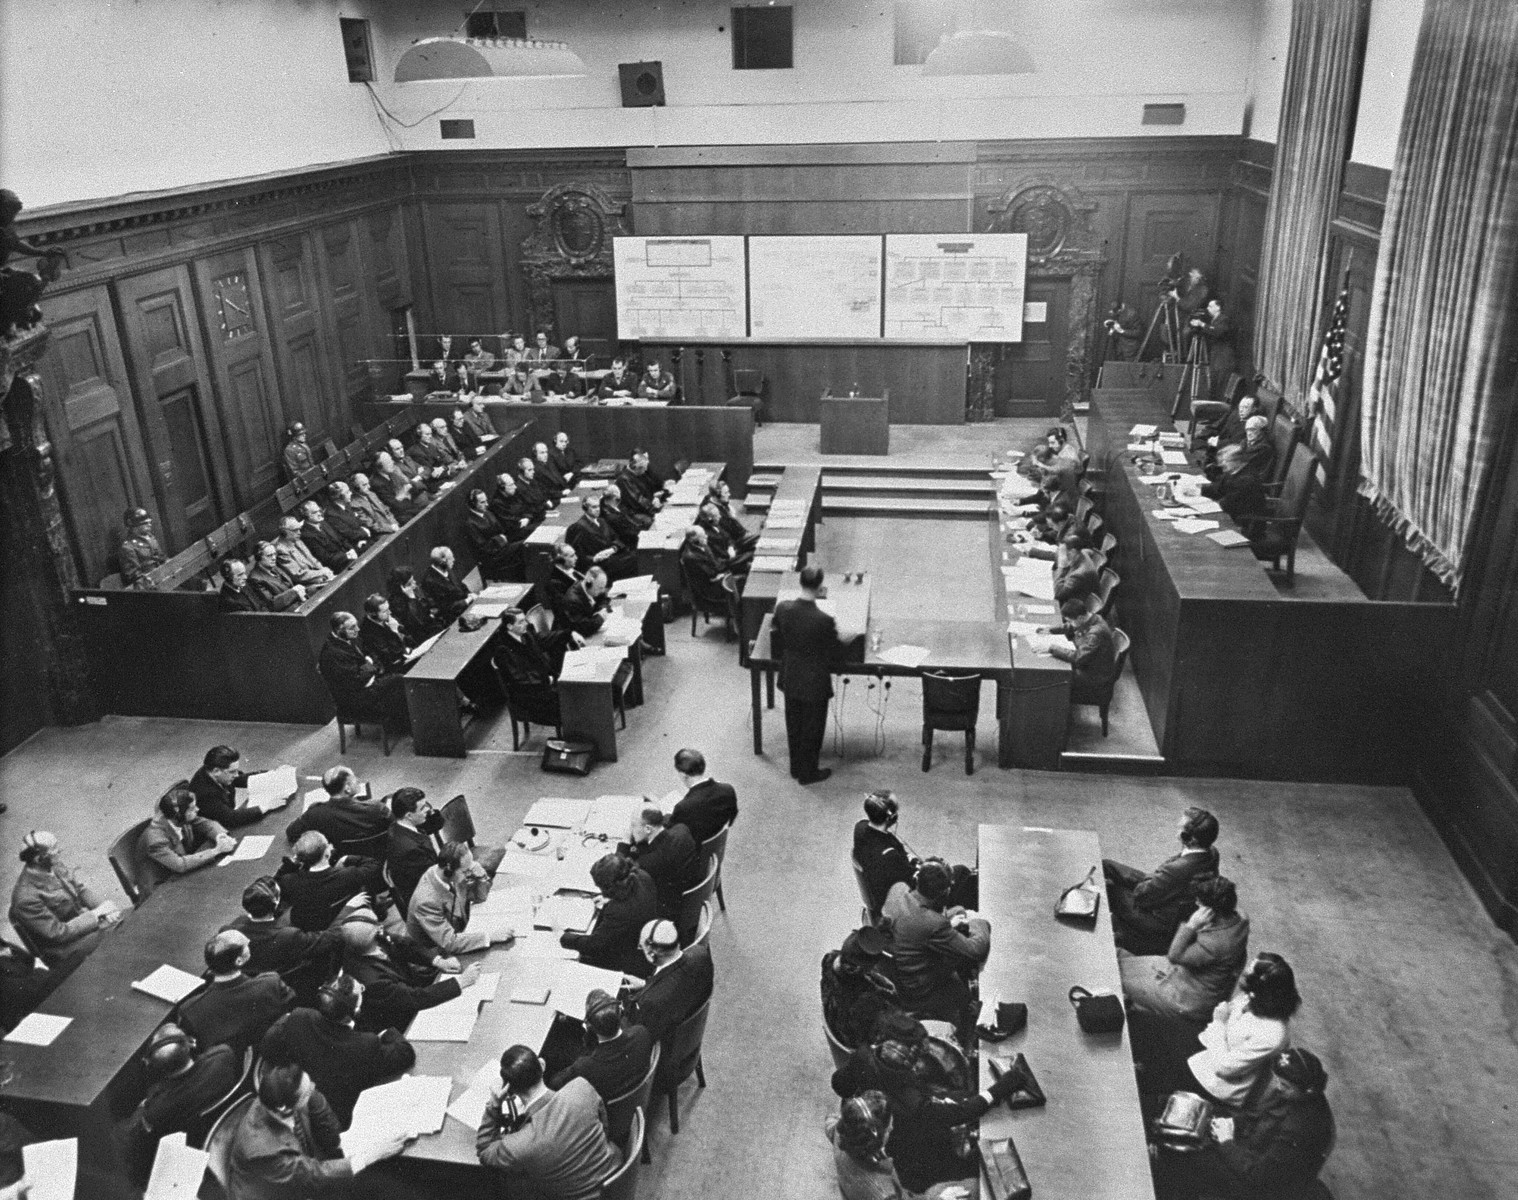 Brigadier General Telford Taylor (standing) opens the prosecution case against the 12 defendants of the huge Krupp works in the main court room, Palace of Justice, Nuremberg, Germany.